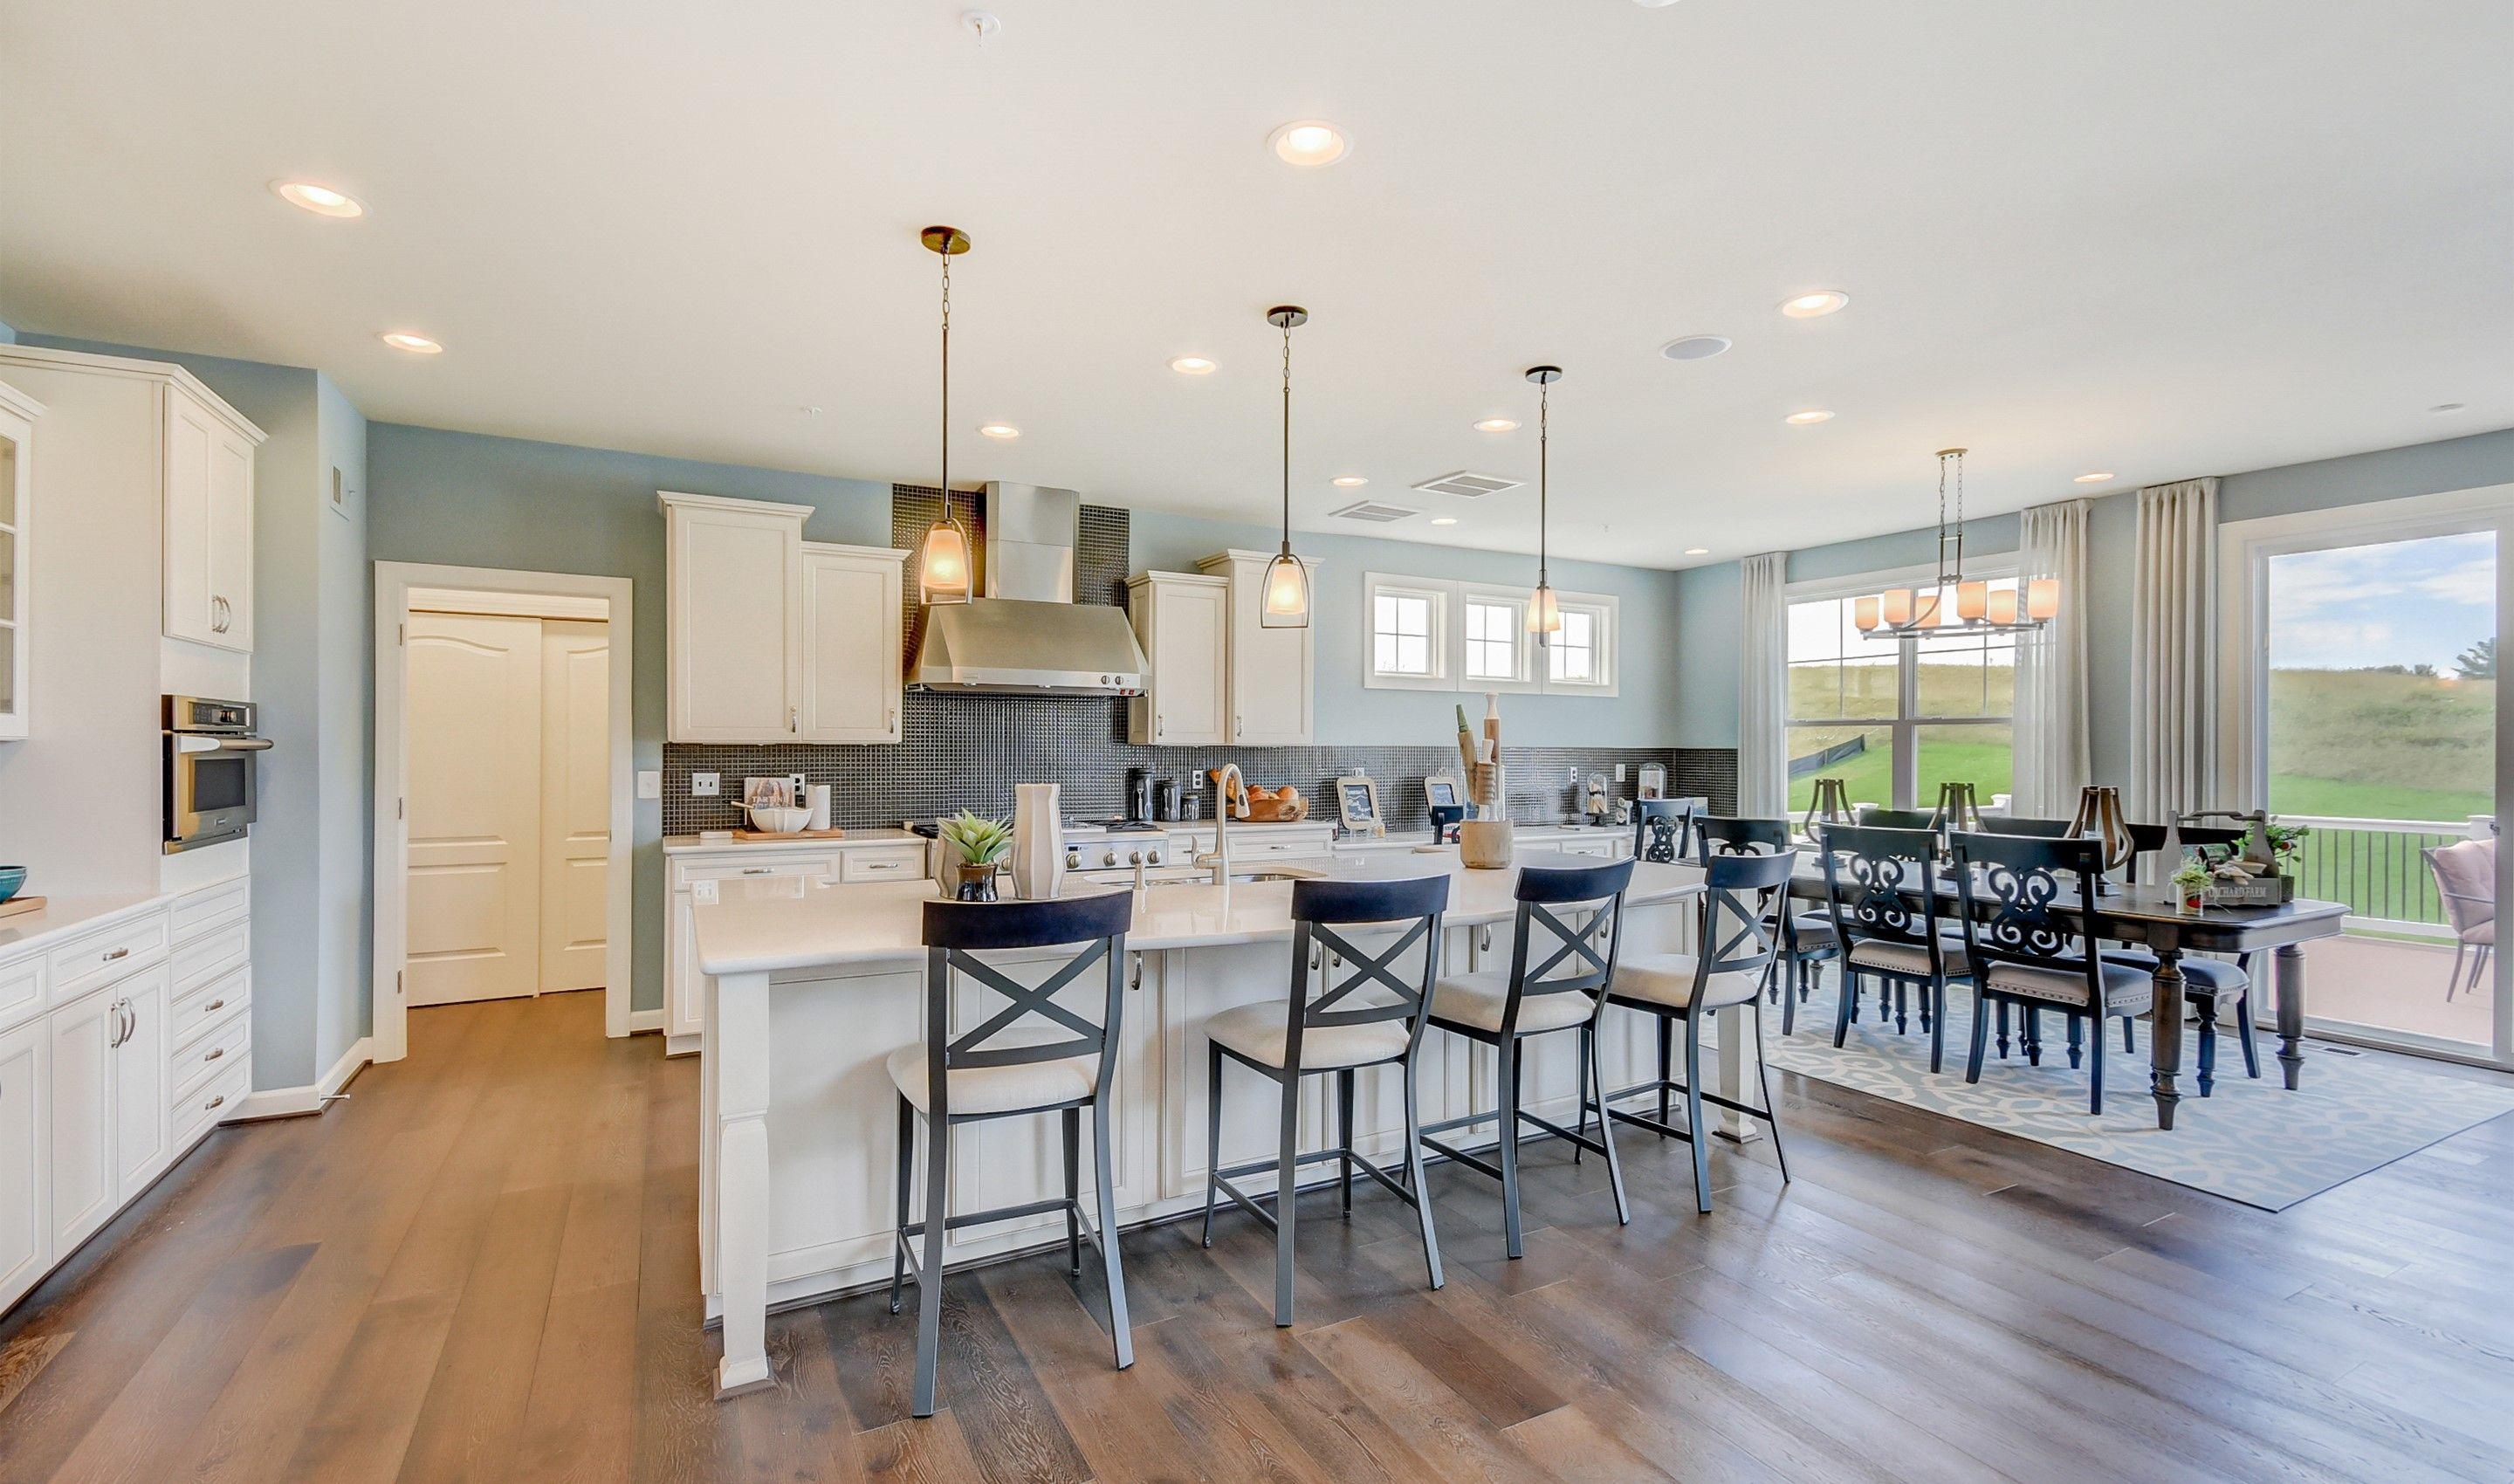 Kitchen featured in the Colorado II By K. Hovnanian® Homes in Dover, DE